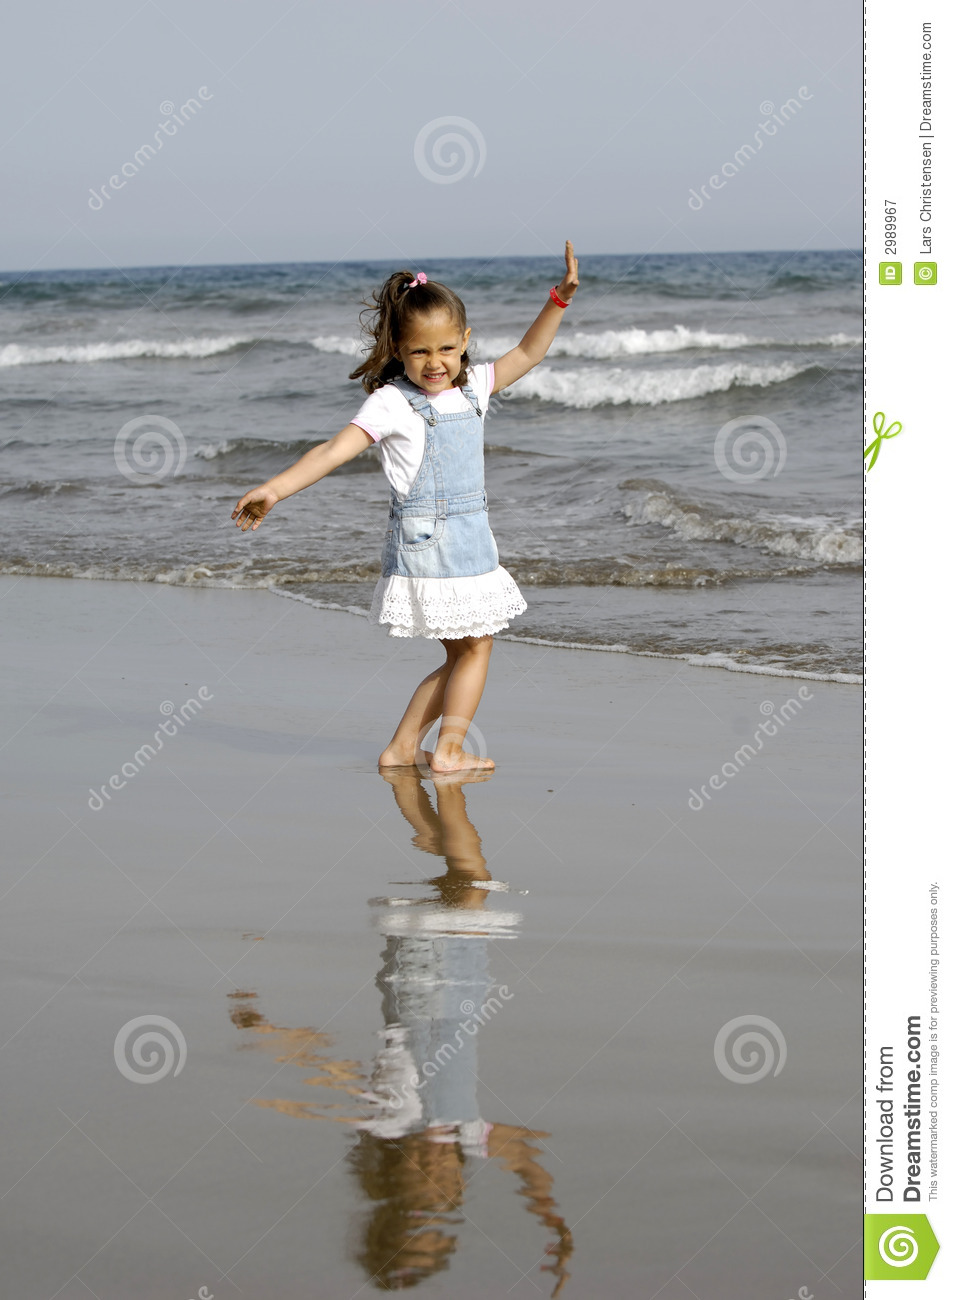 9d07f8a7387 Happy child and ocean stock image. Image of dress